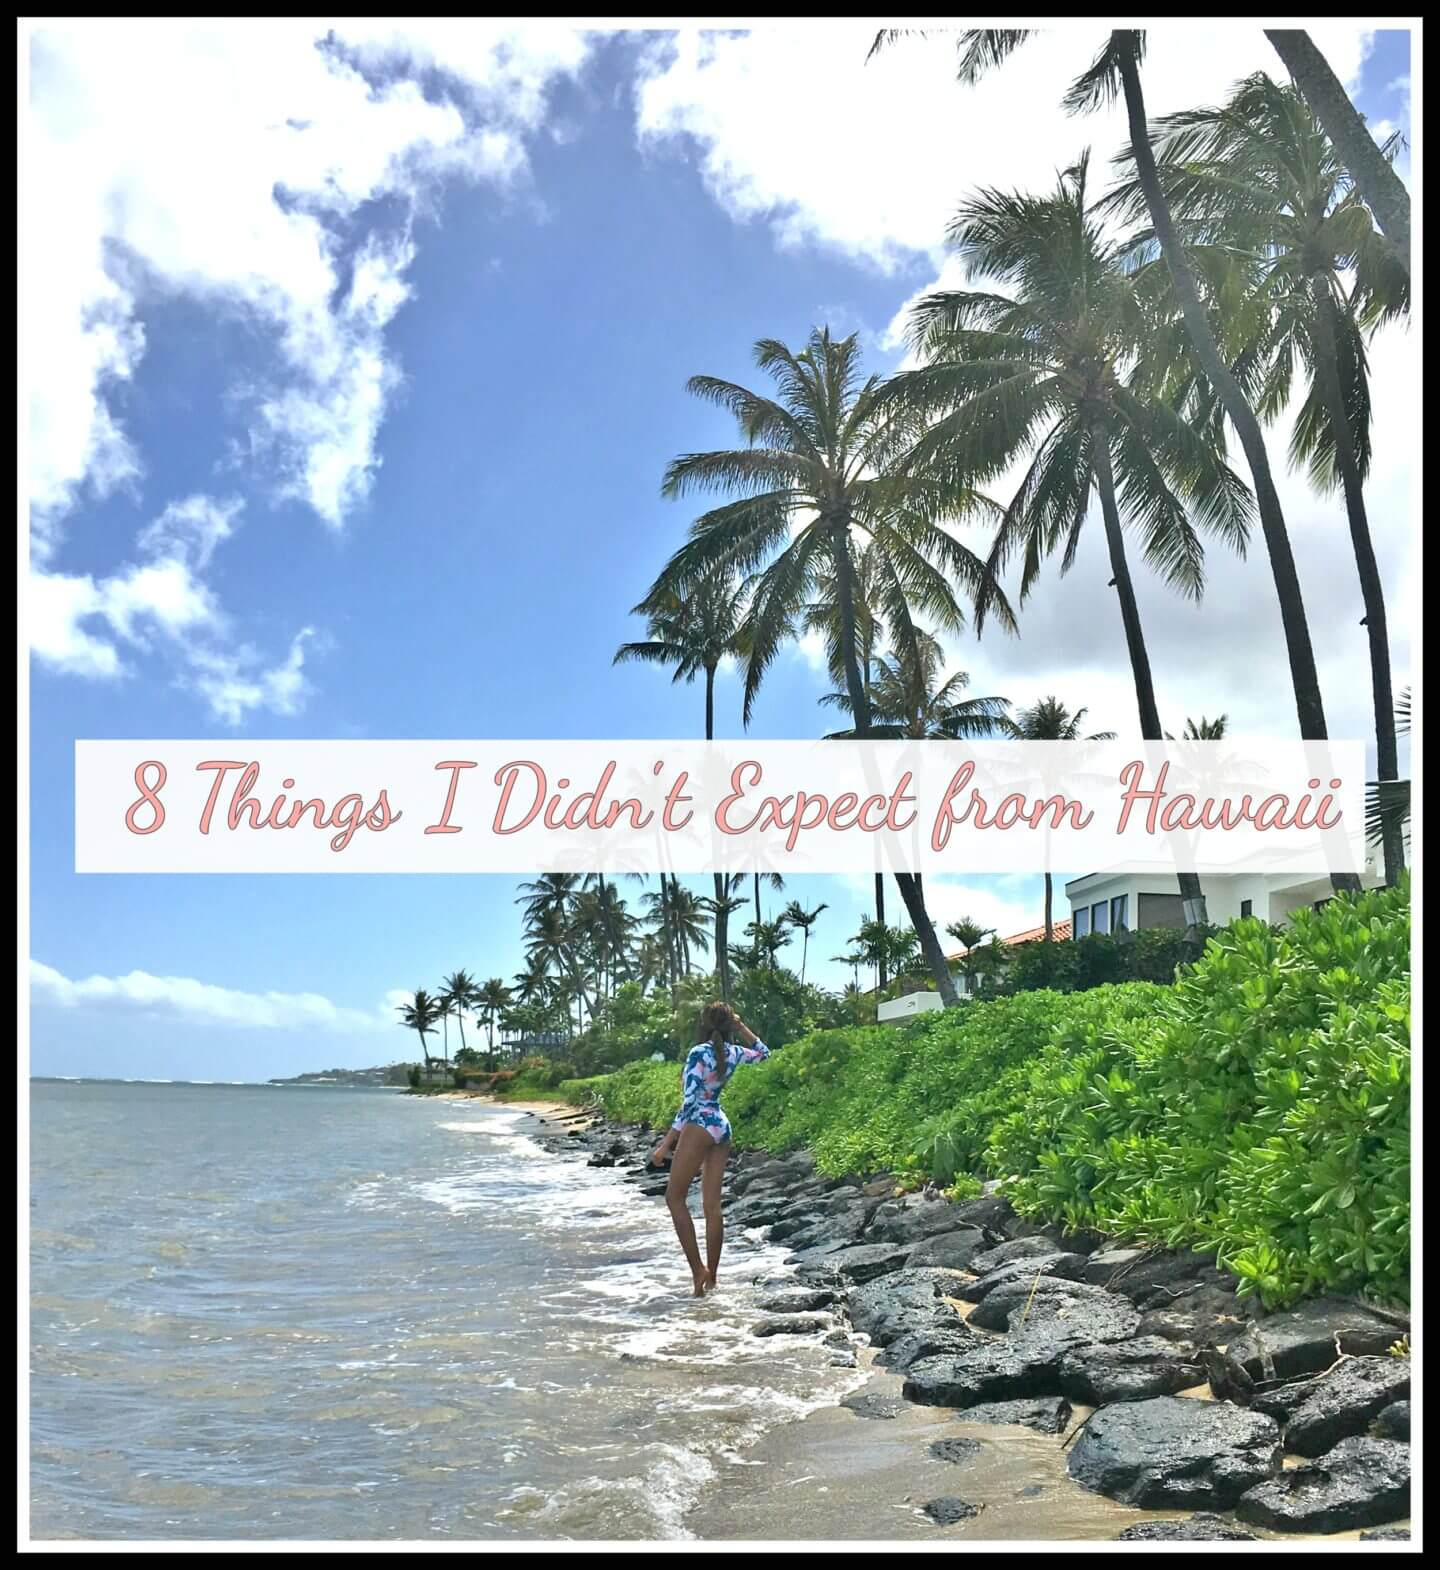 8 Things I Didn't Expect From Hawaii